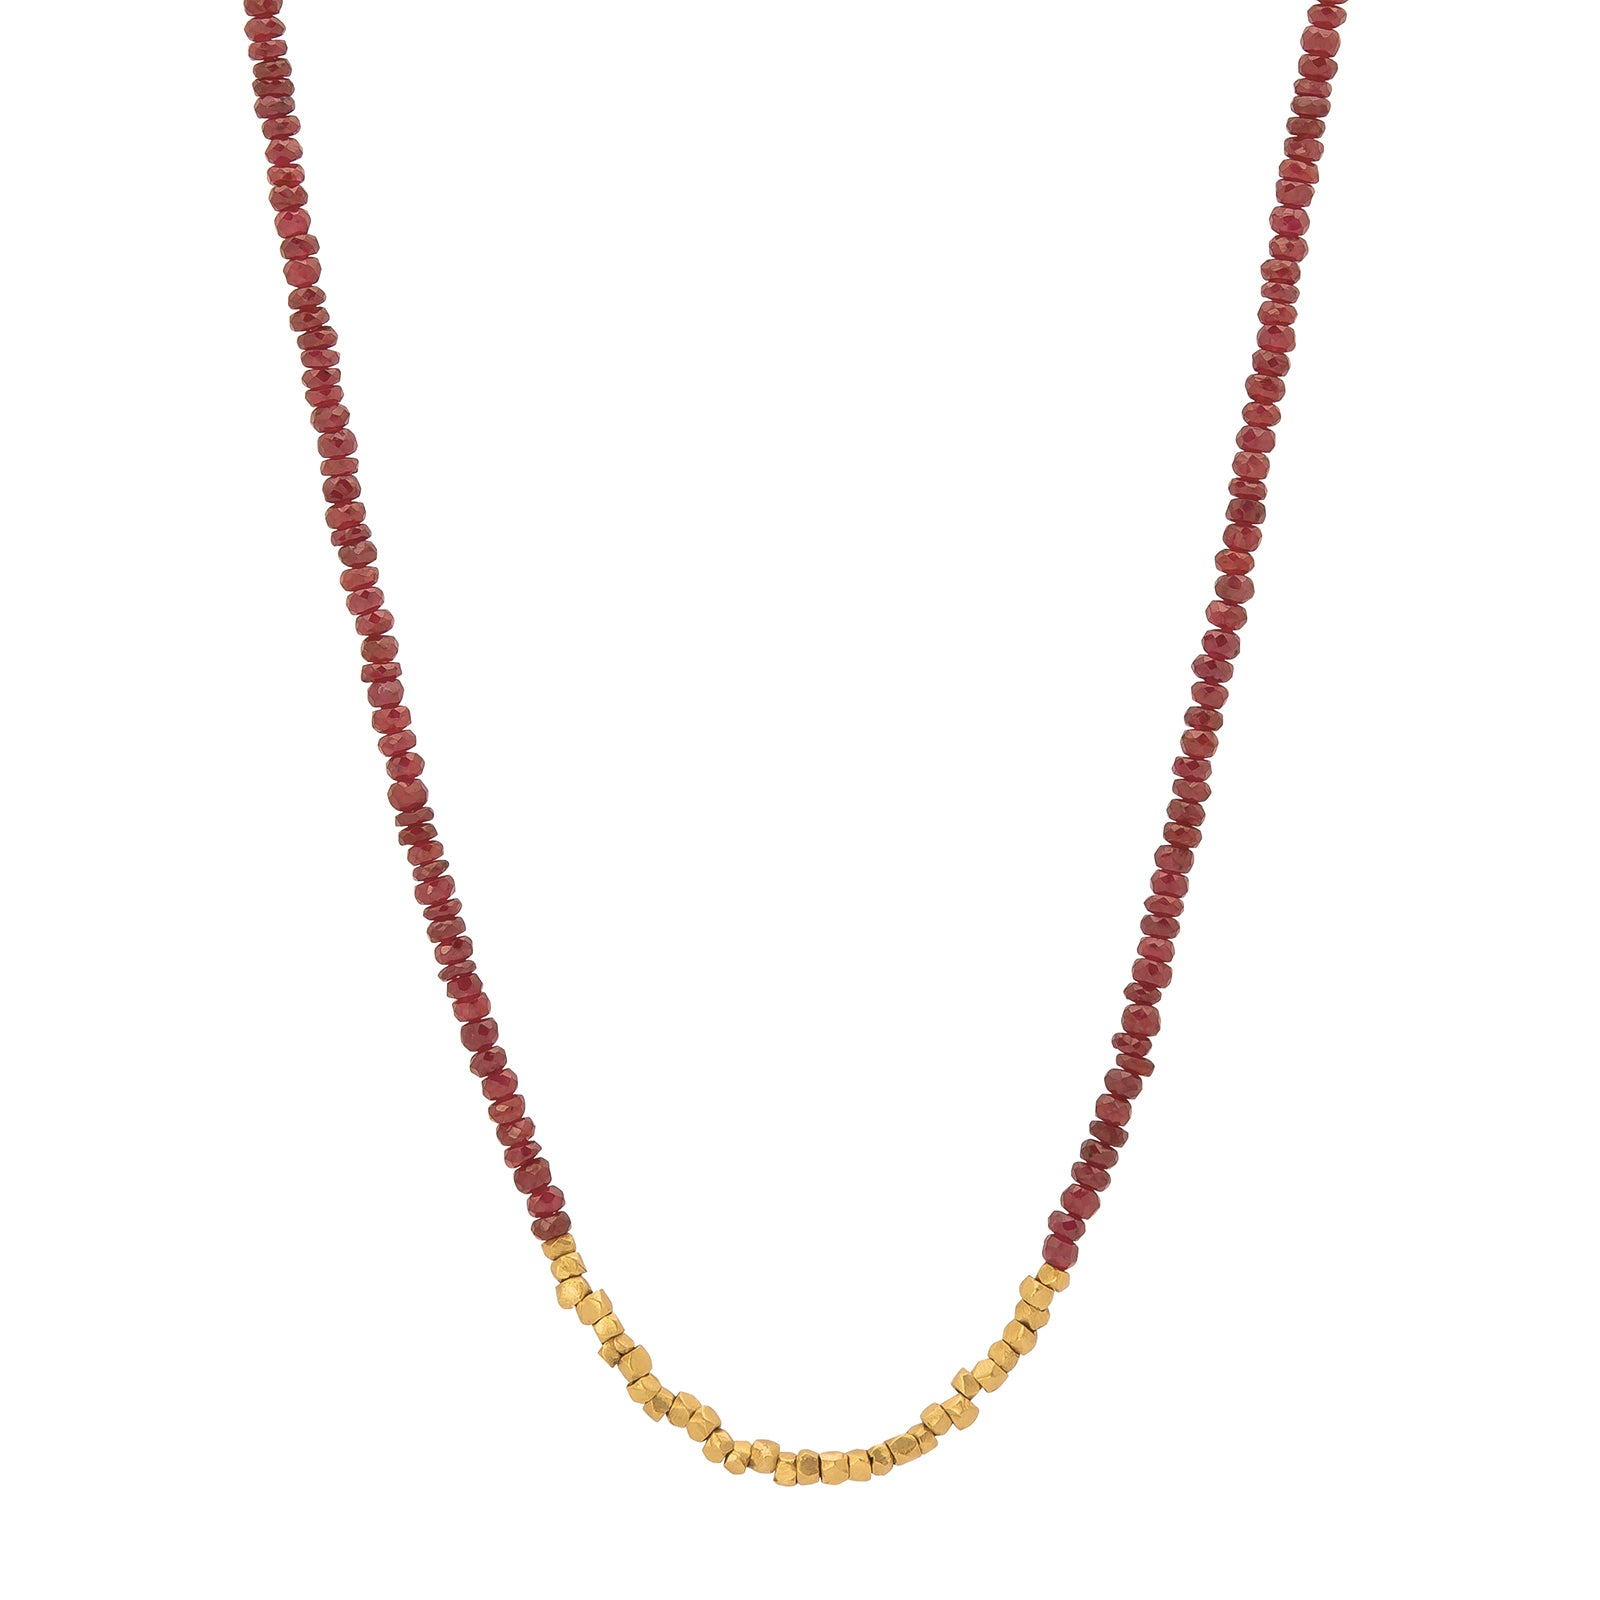 Eli Halili Bead Necklace - Ruby - Necklaces - Broken English Jewelry